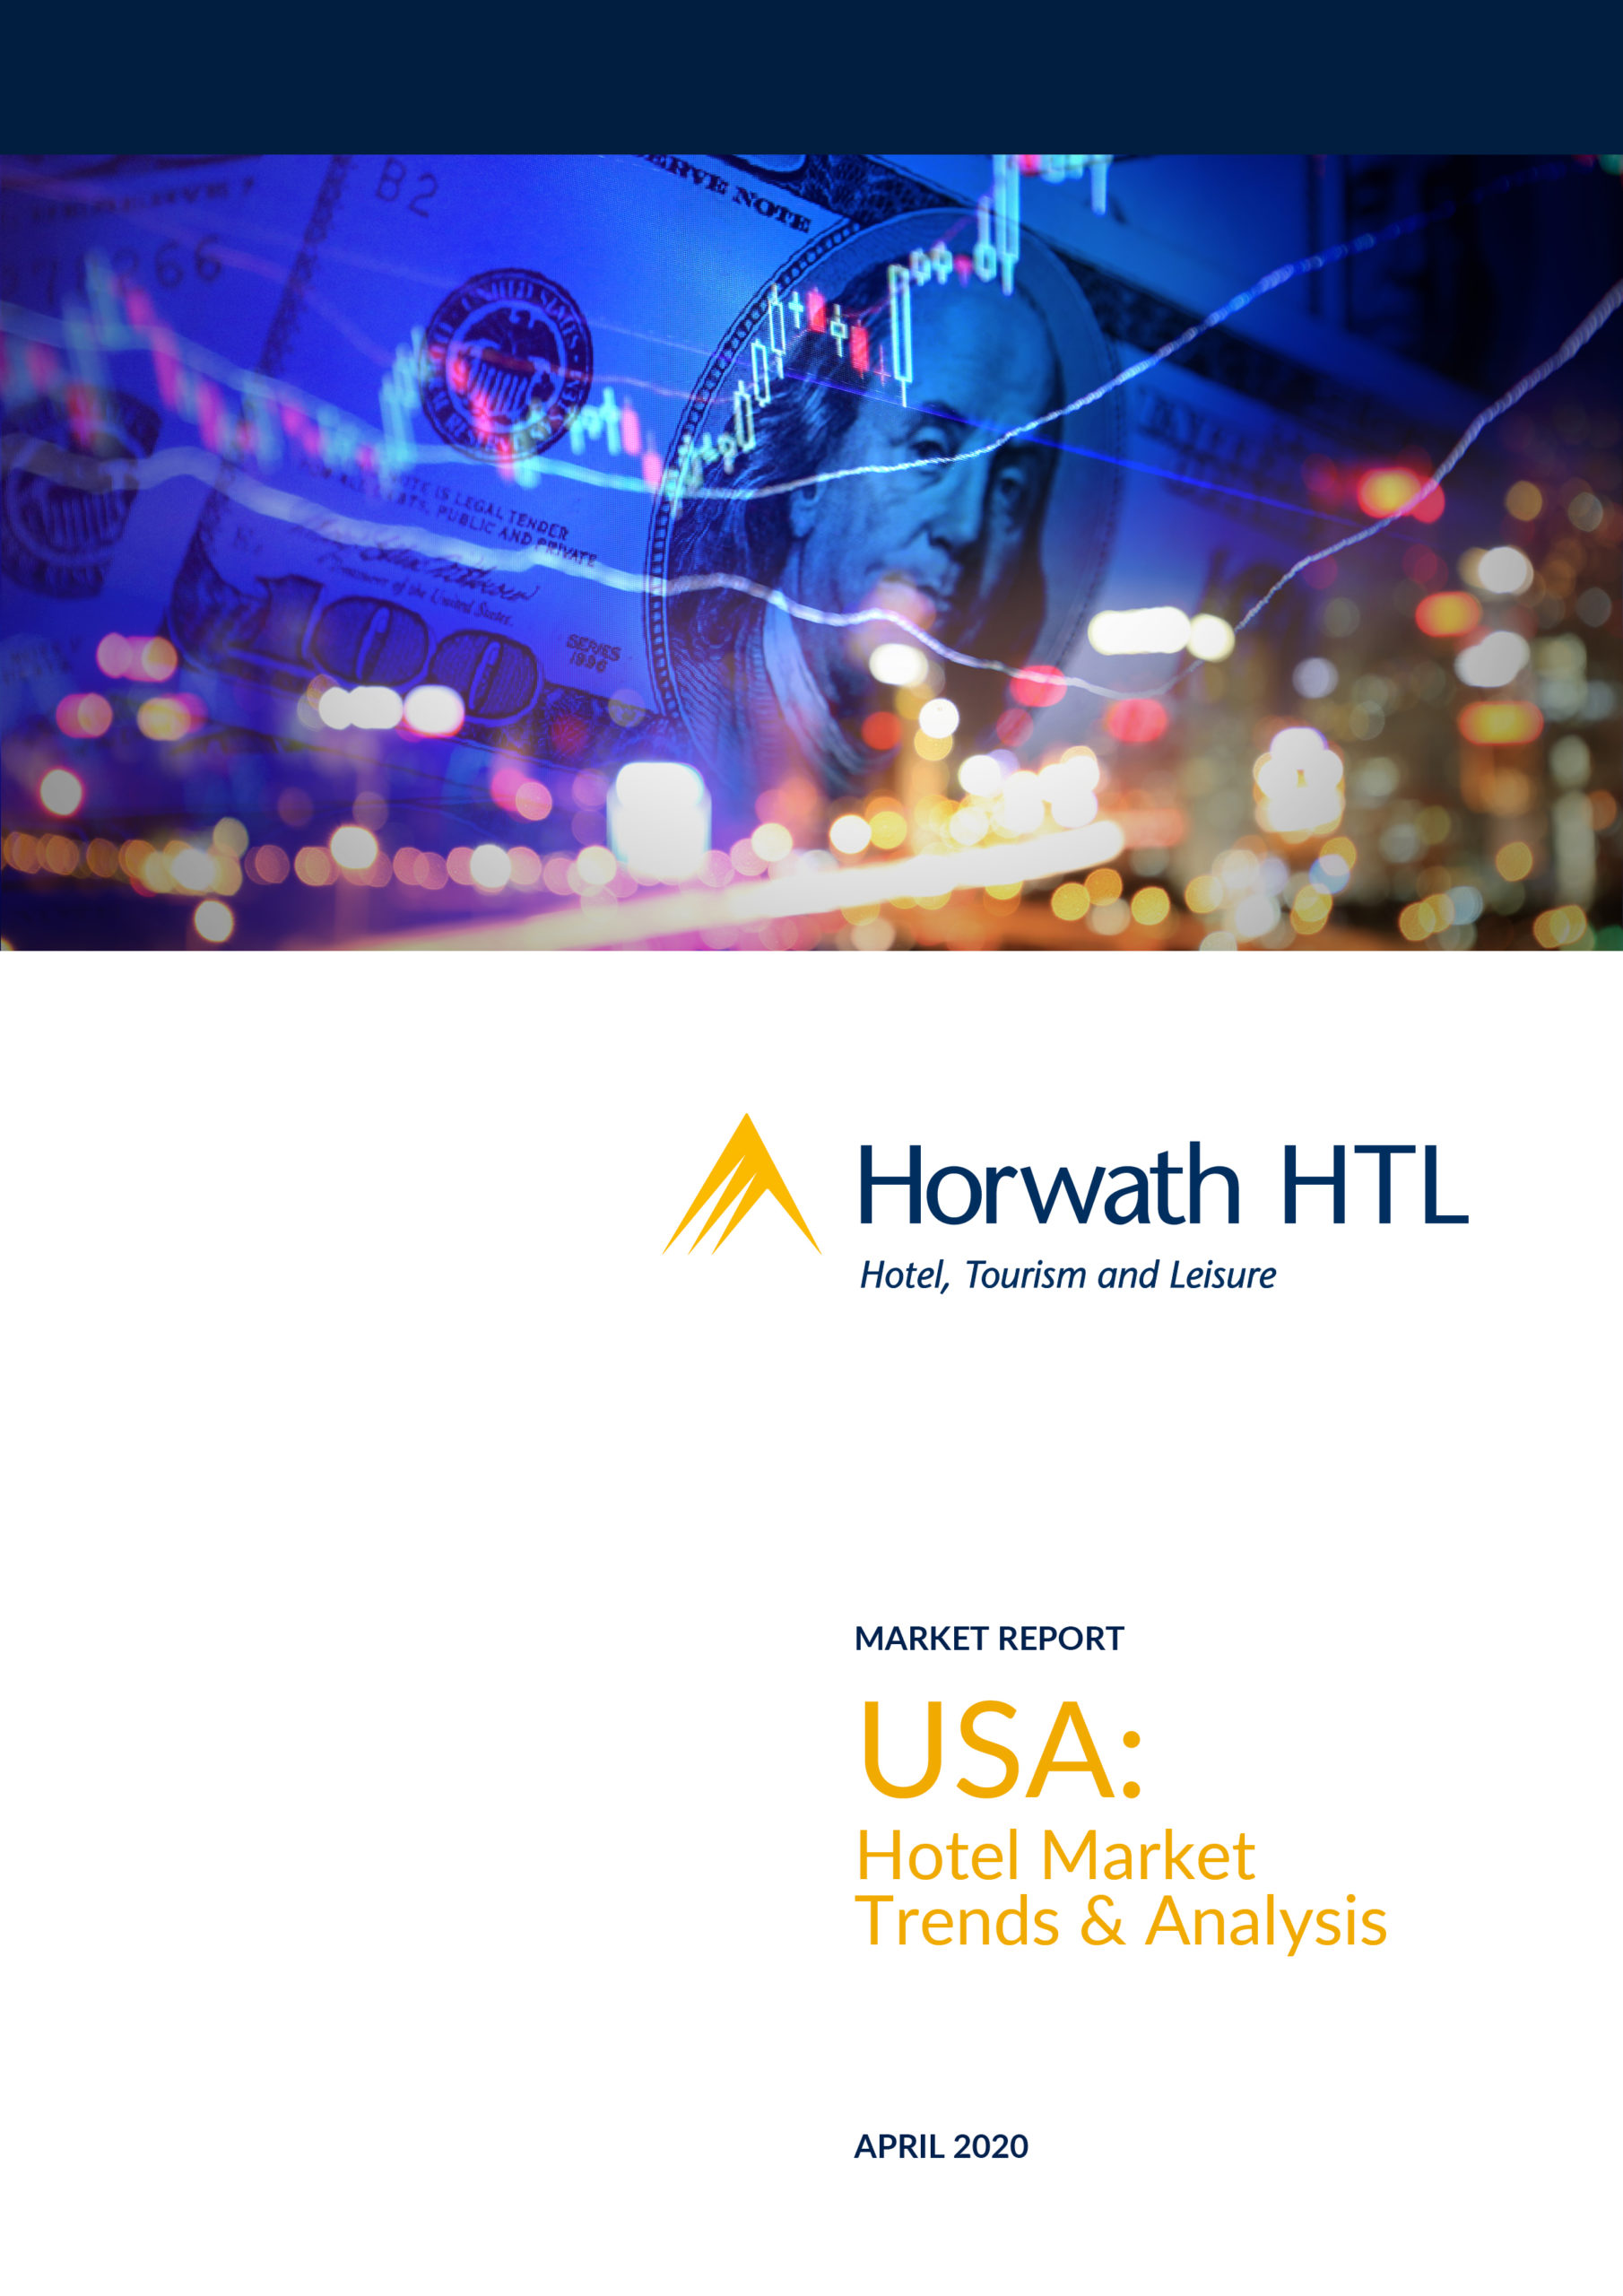 Market Report USA Hotel Market Trends Analysis